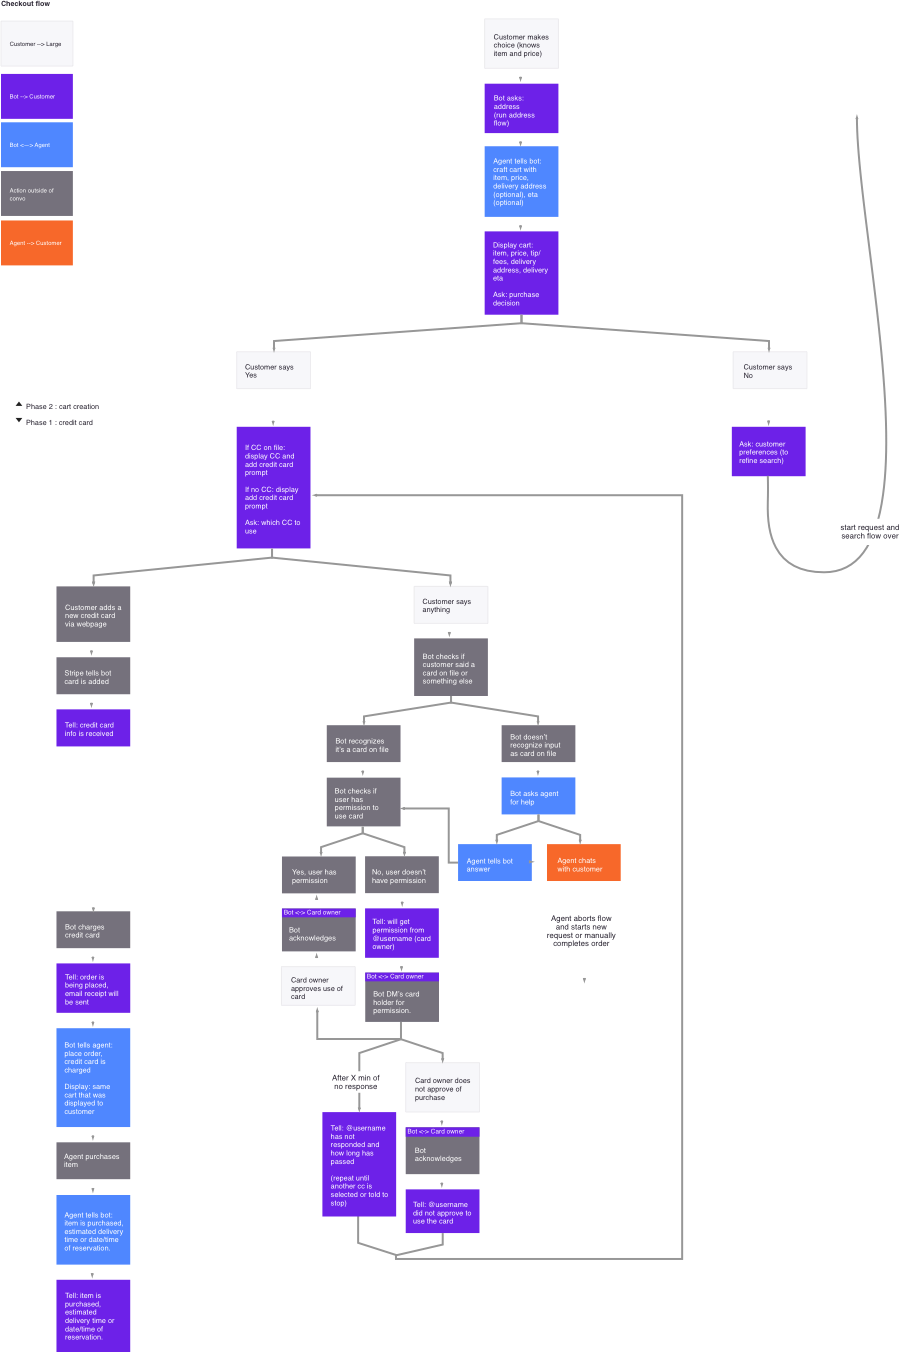 Creative projects workflow diagram programming for online prototypes chatbot larges checkout flow by elaine lee see httpbotdesign ccuart Choice Image